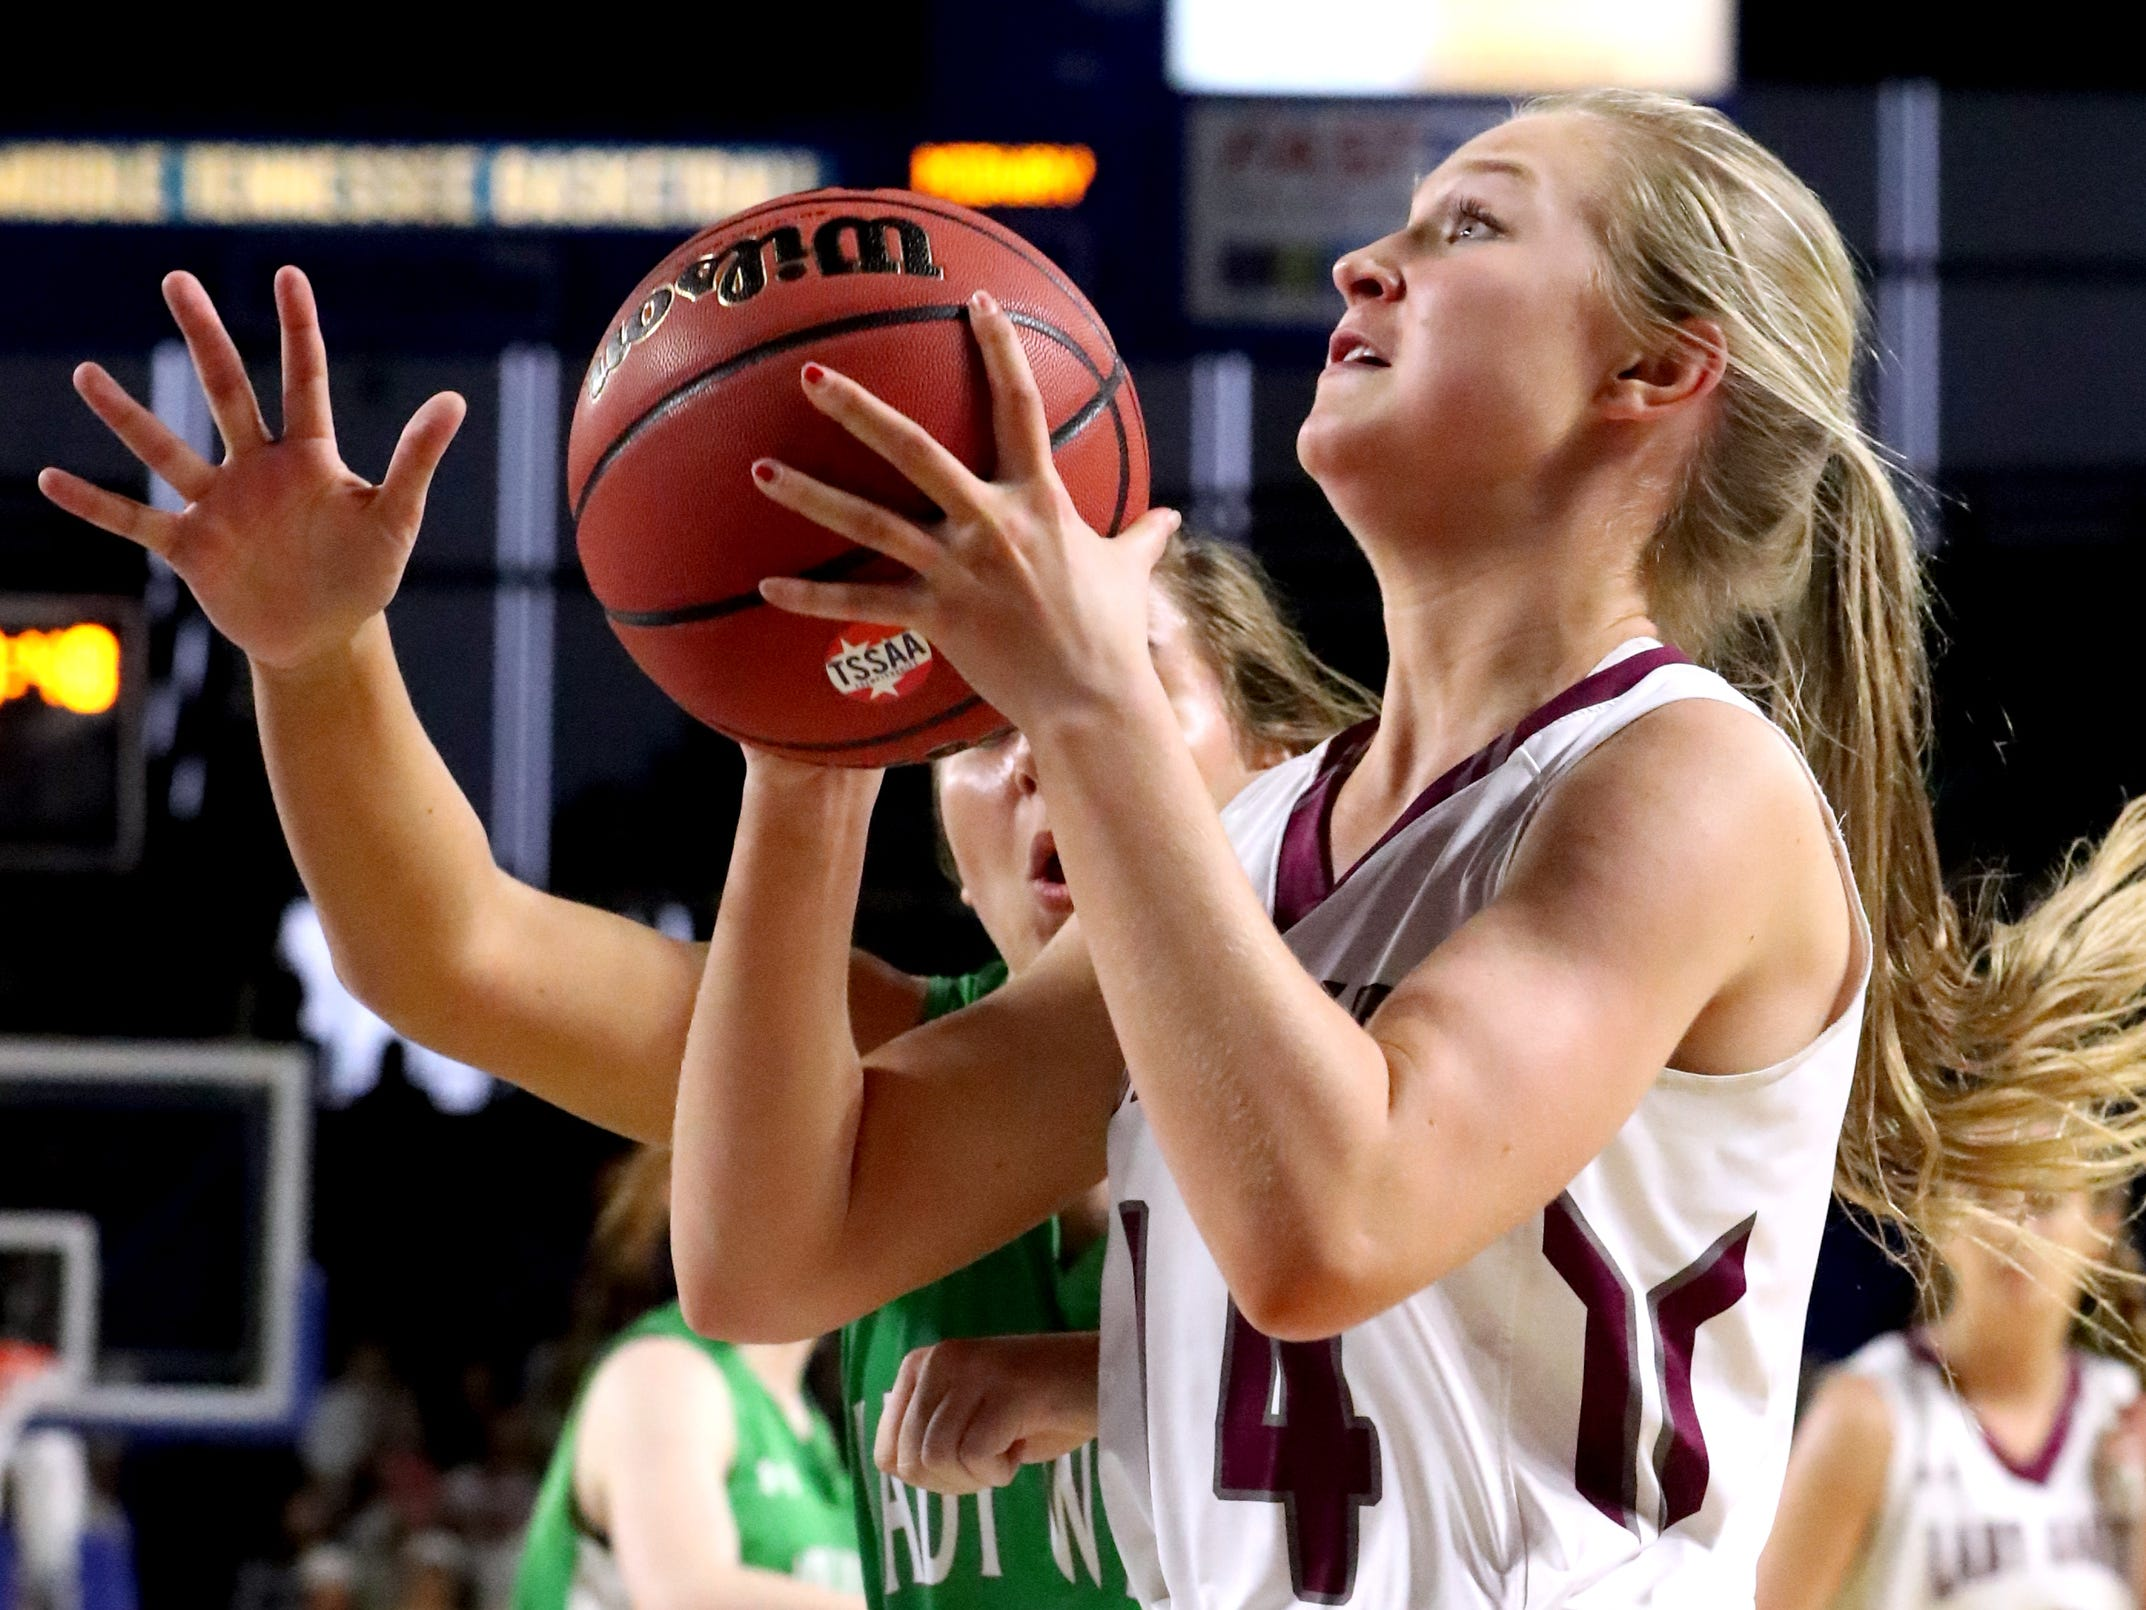 Eagleville's Mary Elise Lynch (14) shoots the ball as Midway's Rebecca Lemasters (3) guards her during the quarterfinal round of the TSSAA Div. 1 Class A Girls State Tournament, on Thursday, March 7, 2019, at Murphy Center in Murfreesboro, Tenn.